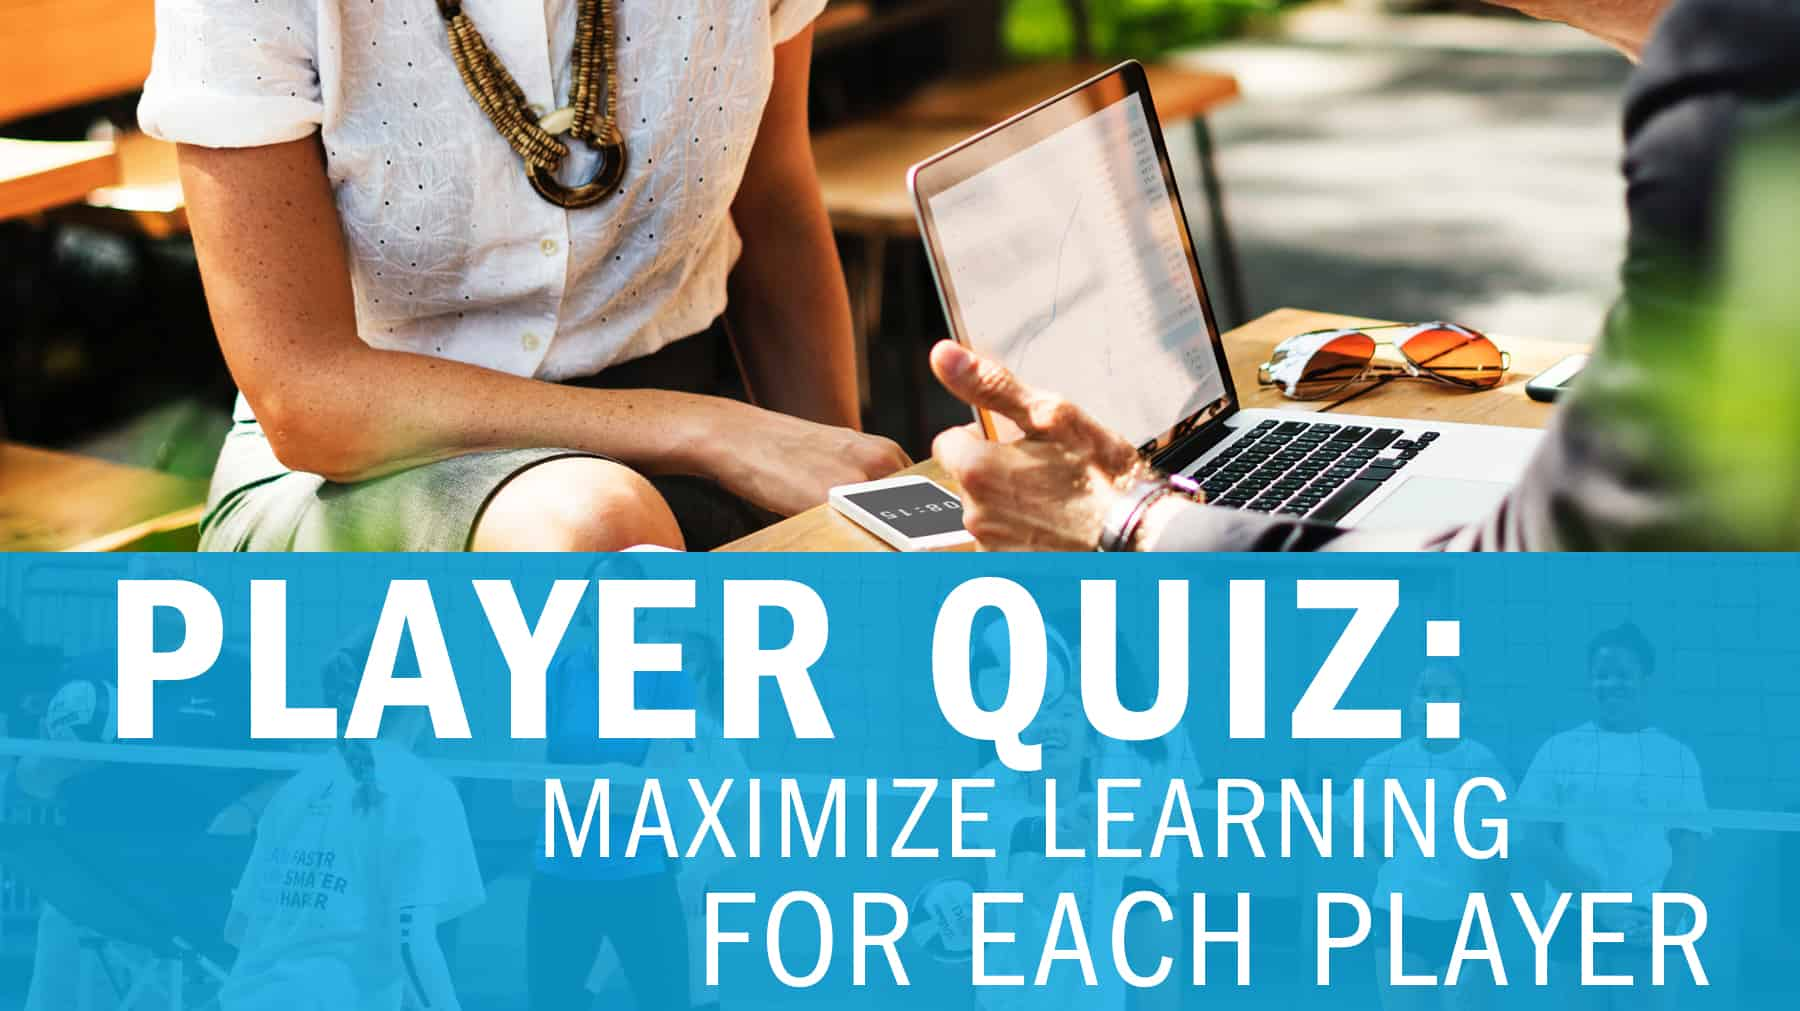 Player quiz: Maximize learning for each player